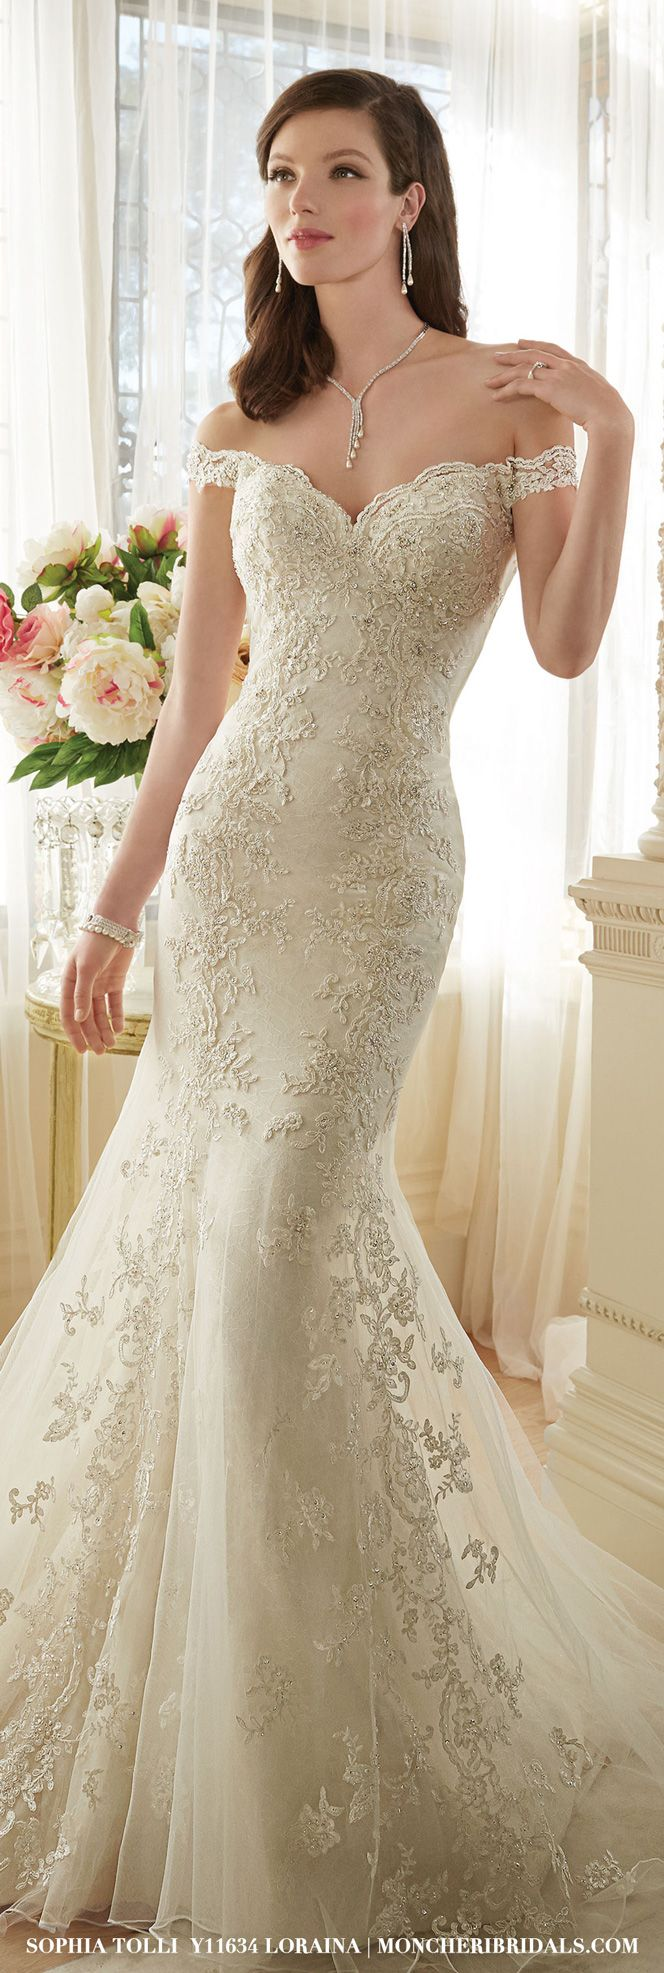 Y11634 – Loraina   Pinterest   Trumpets, Gowns and Shoulder